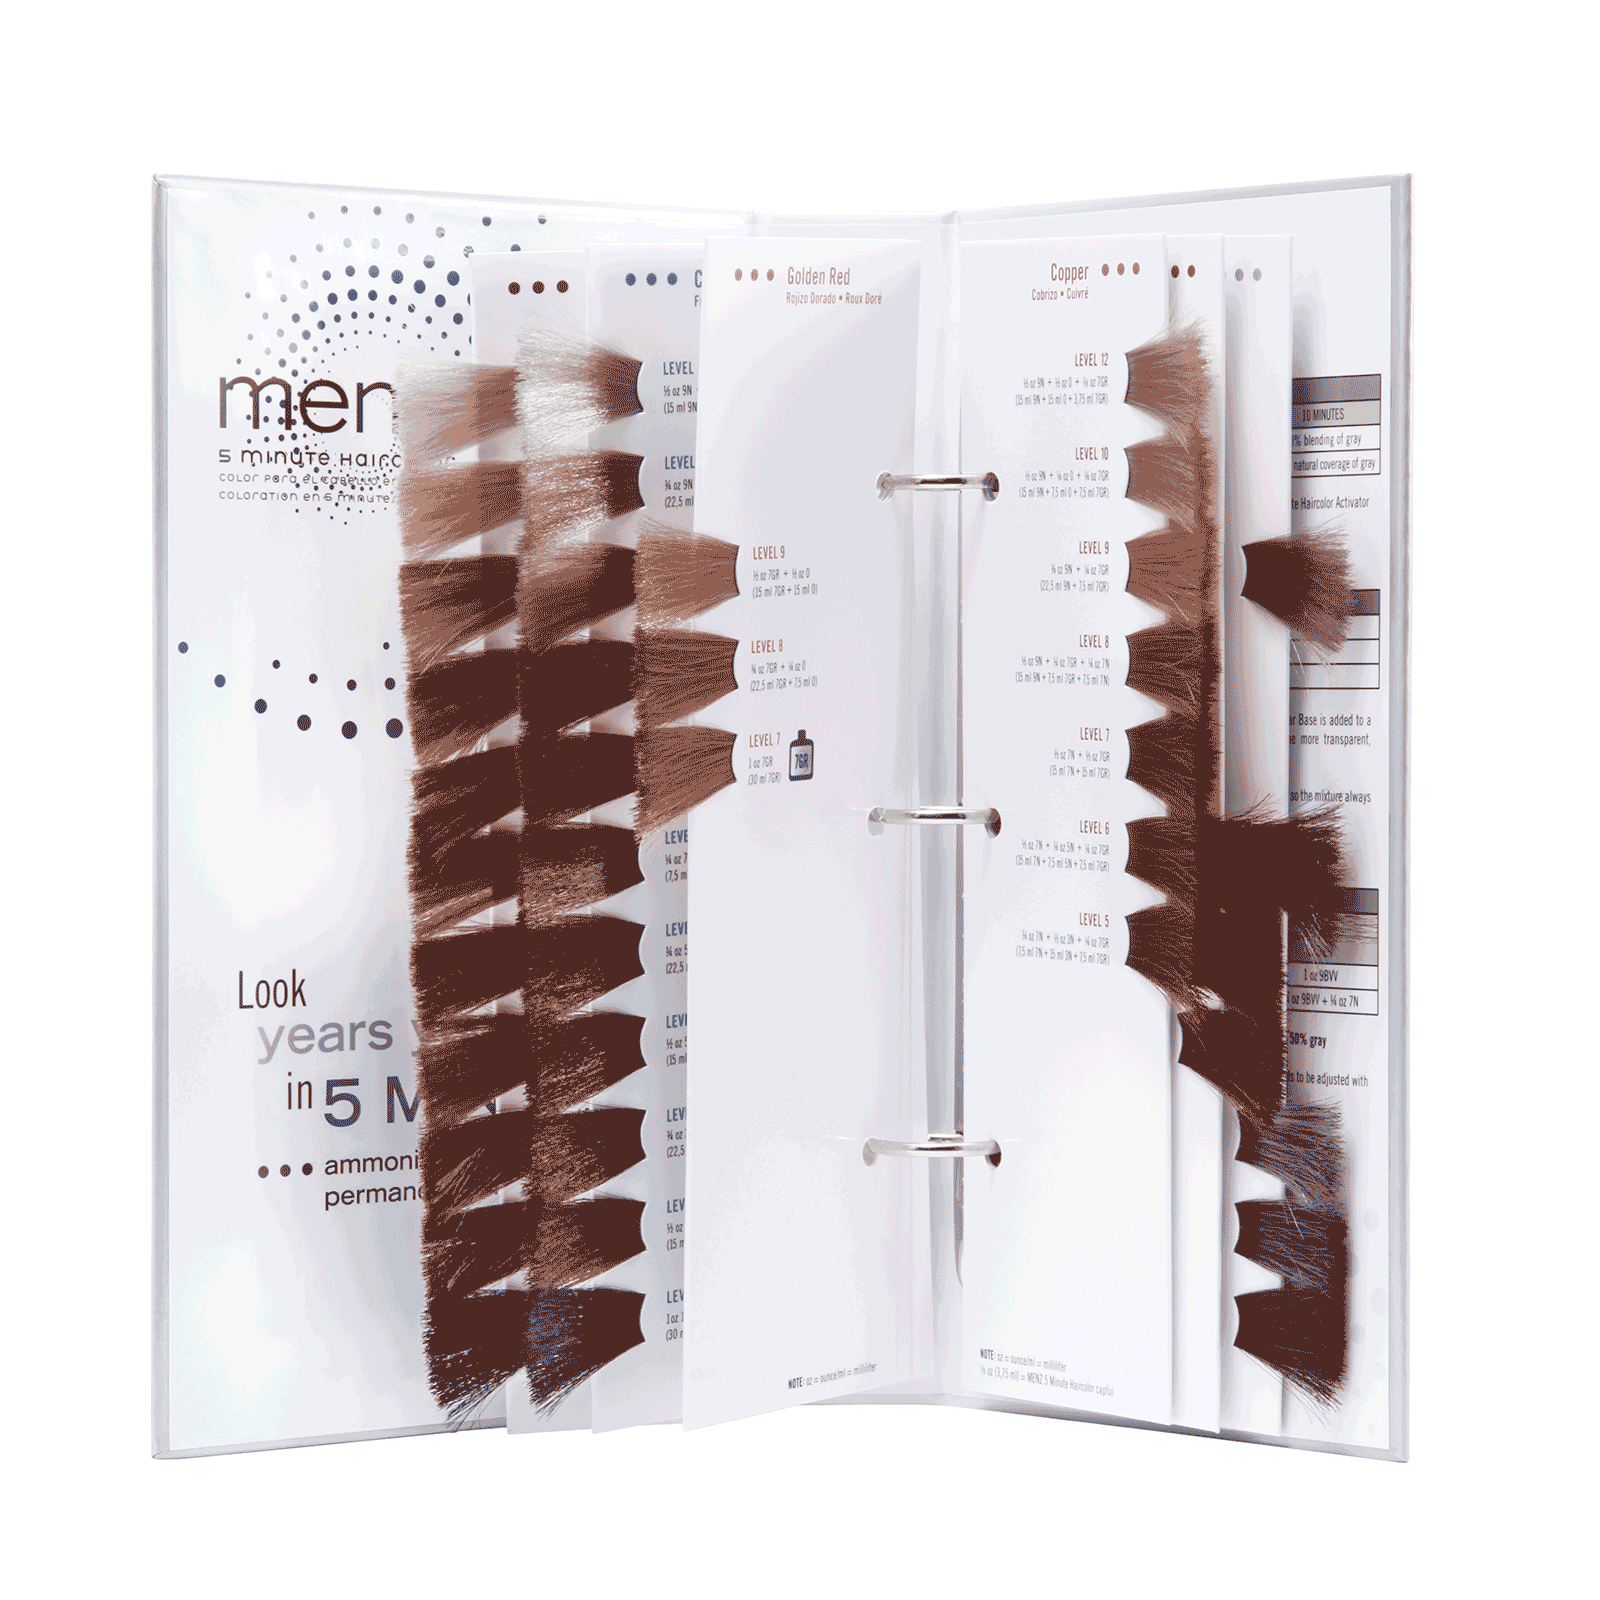 5 Minute Haircolor Swatch Book - Scruples   CosmoProf